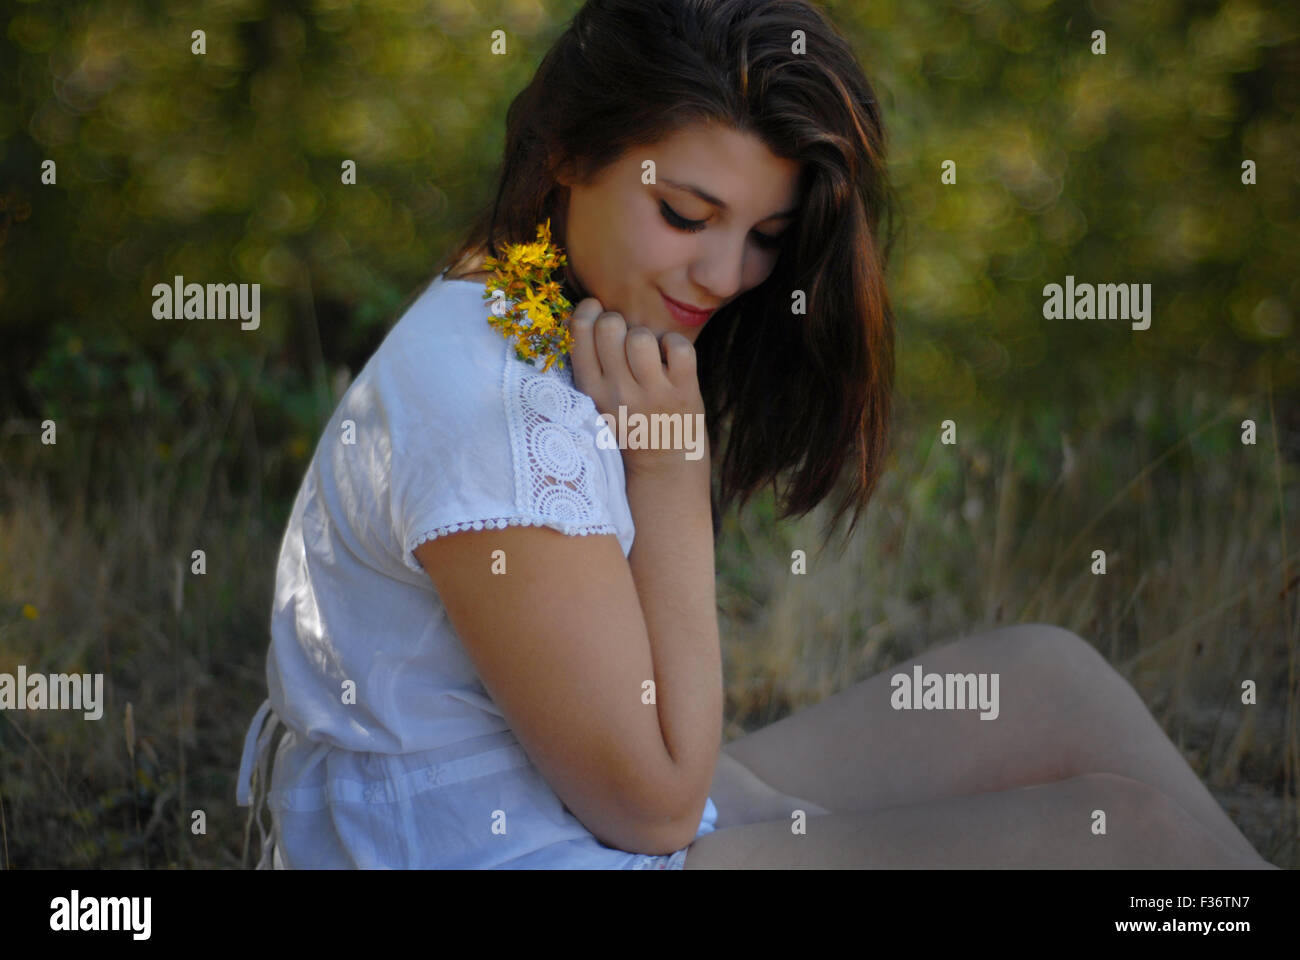 beauty girl looking down with yellow flowers in her hands in a white dress - Stock Image